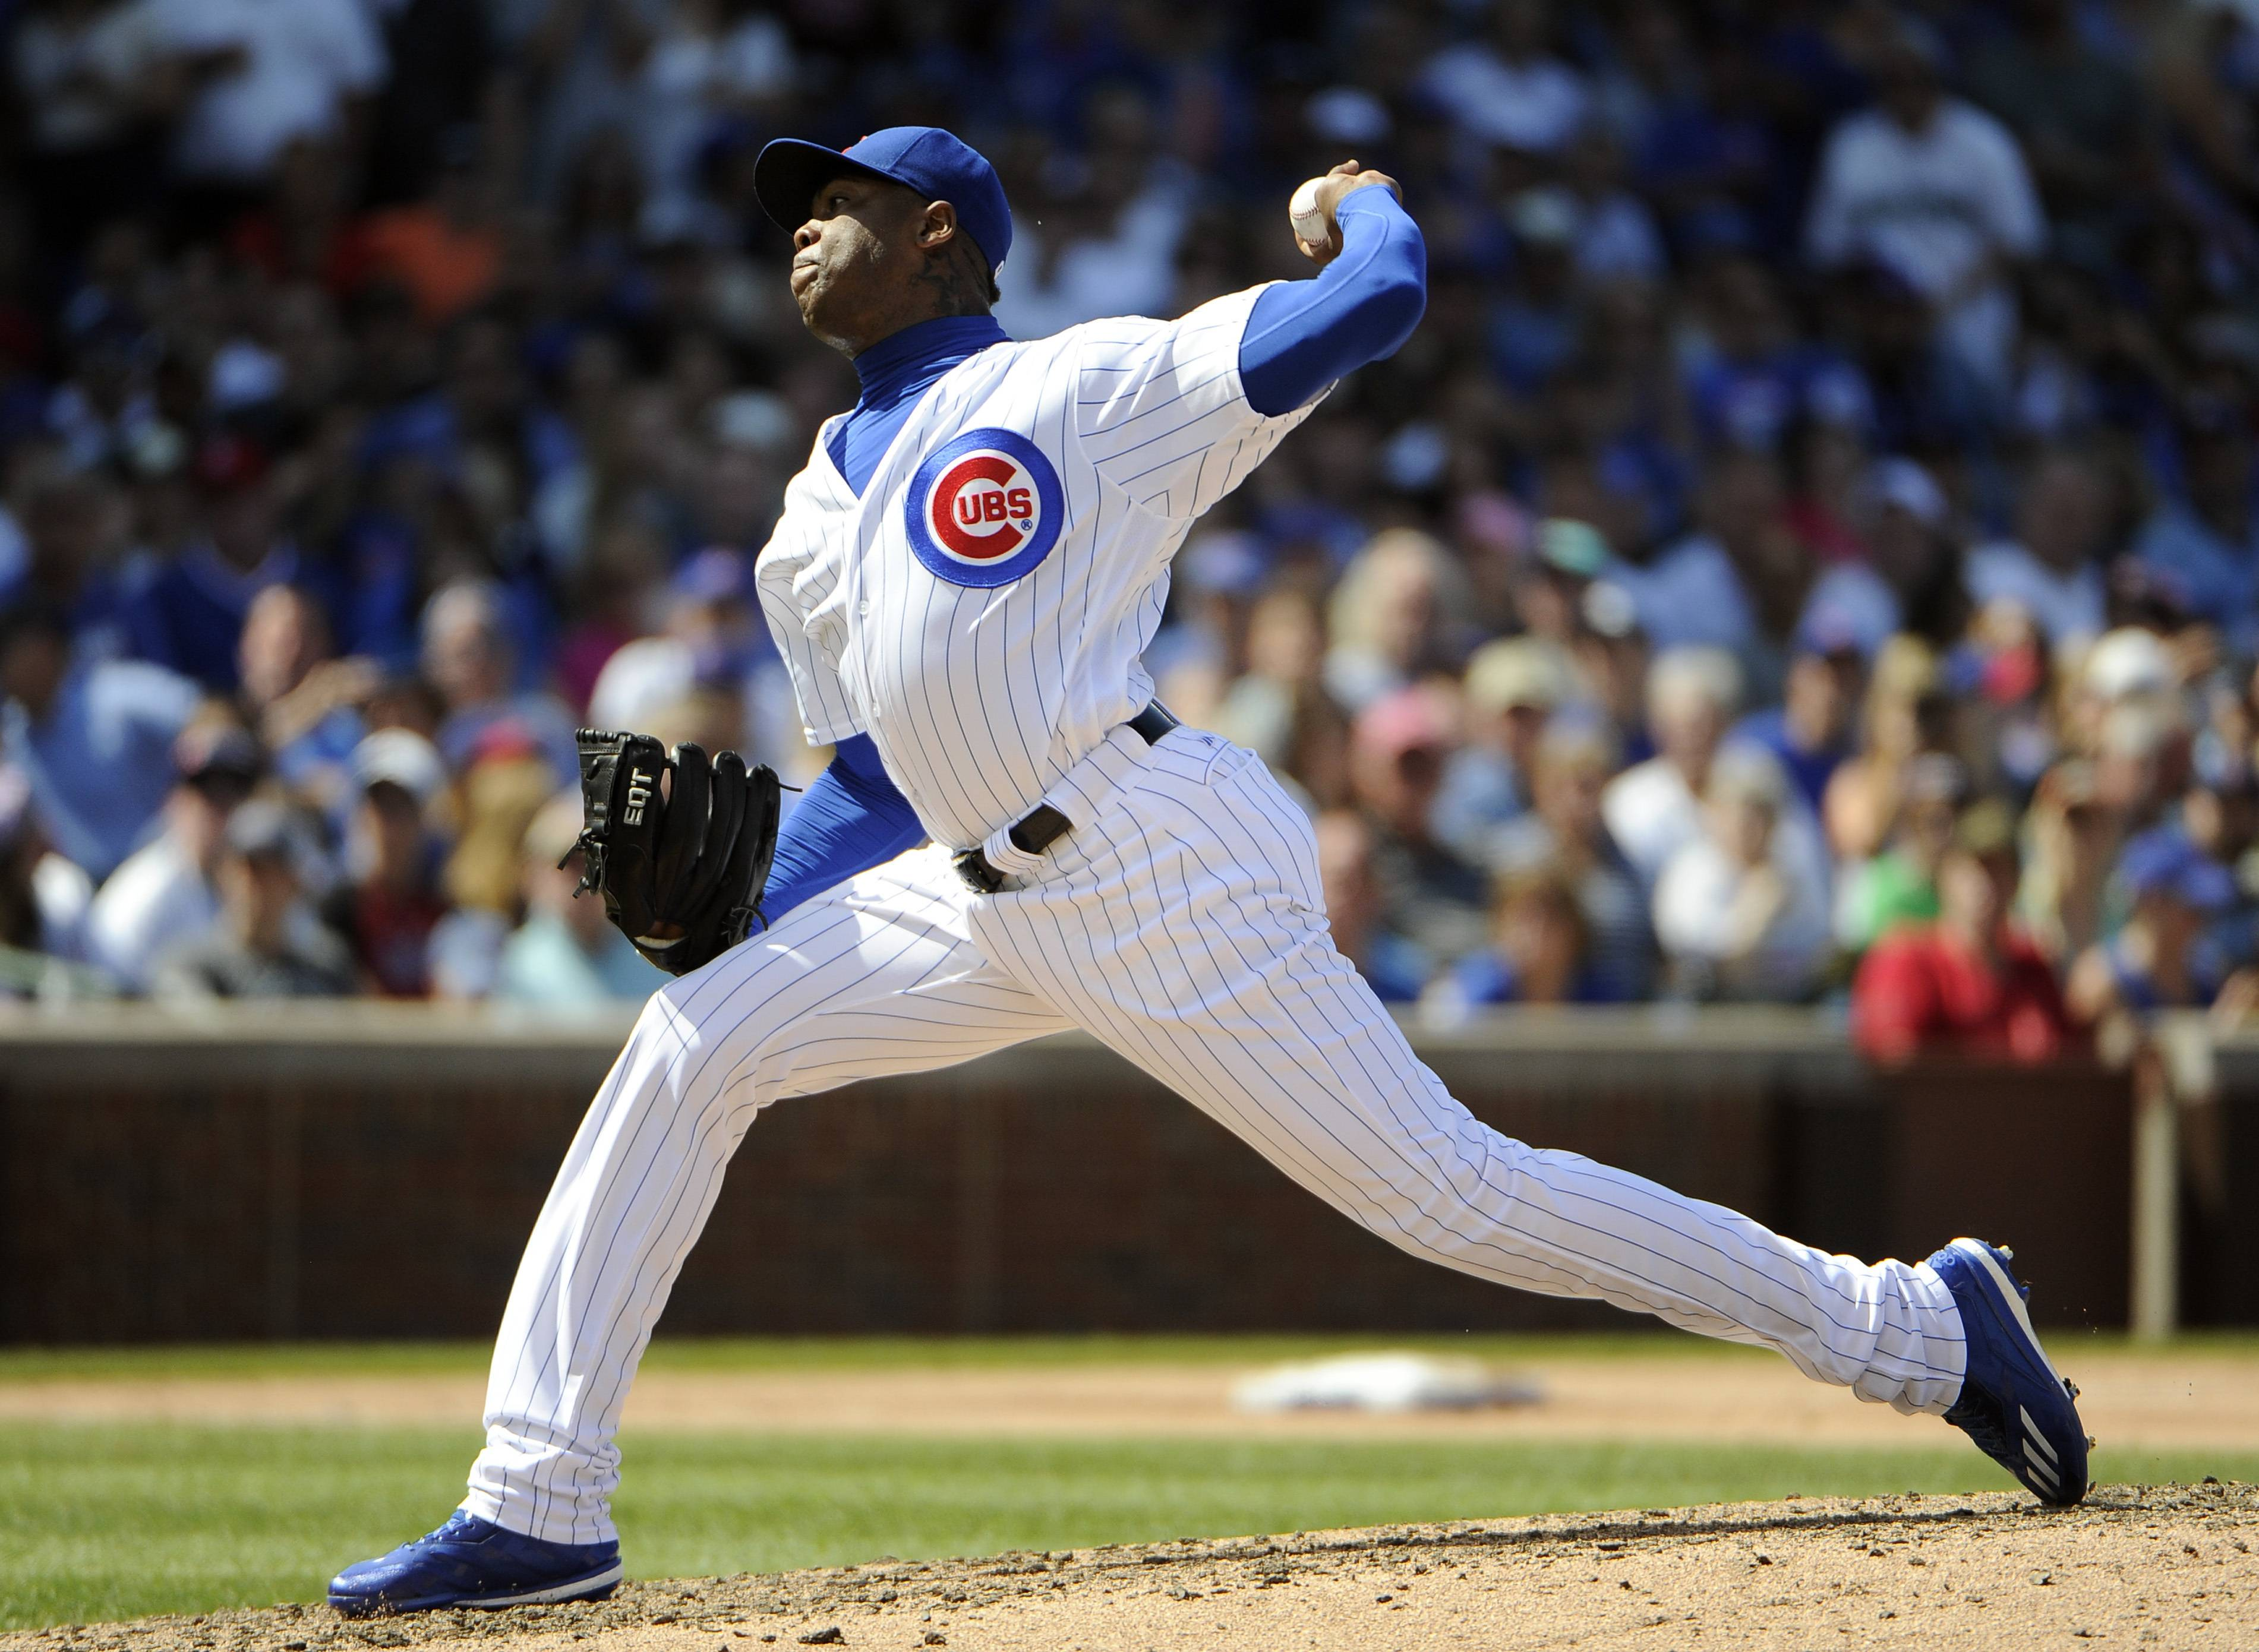 Cubs relief pitcher Aroldis Chapman throws against Seattle during the eighth inning on Saturday in Chicago. Cub fans will embrace Chapman, and disregard his past, as long as he throws 100 mph and gets the job done, Barry Rozner says.